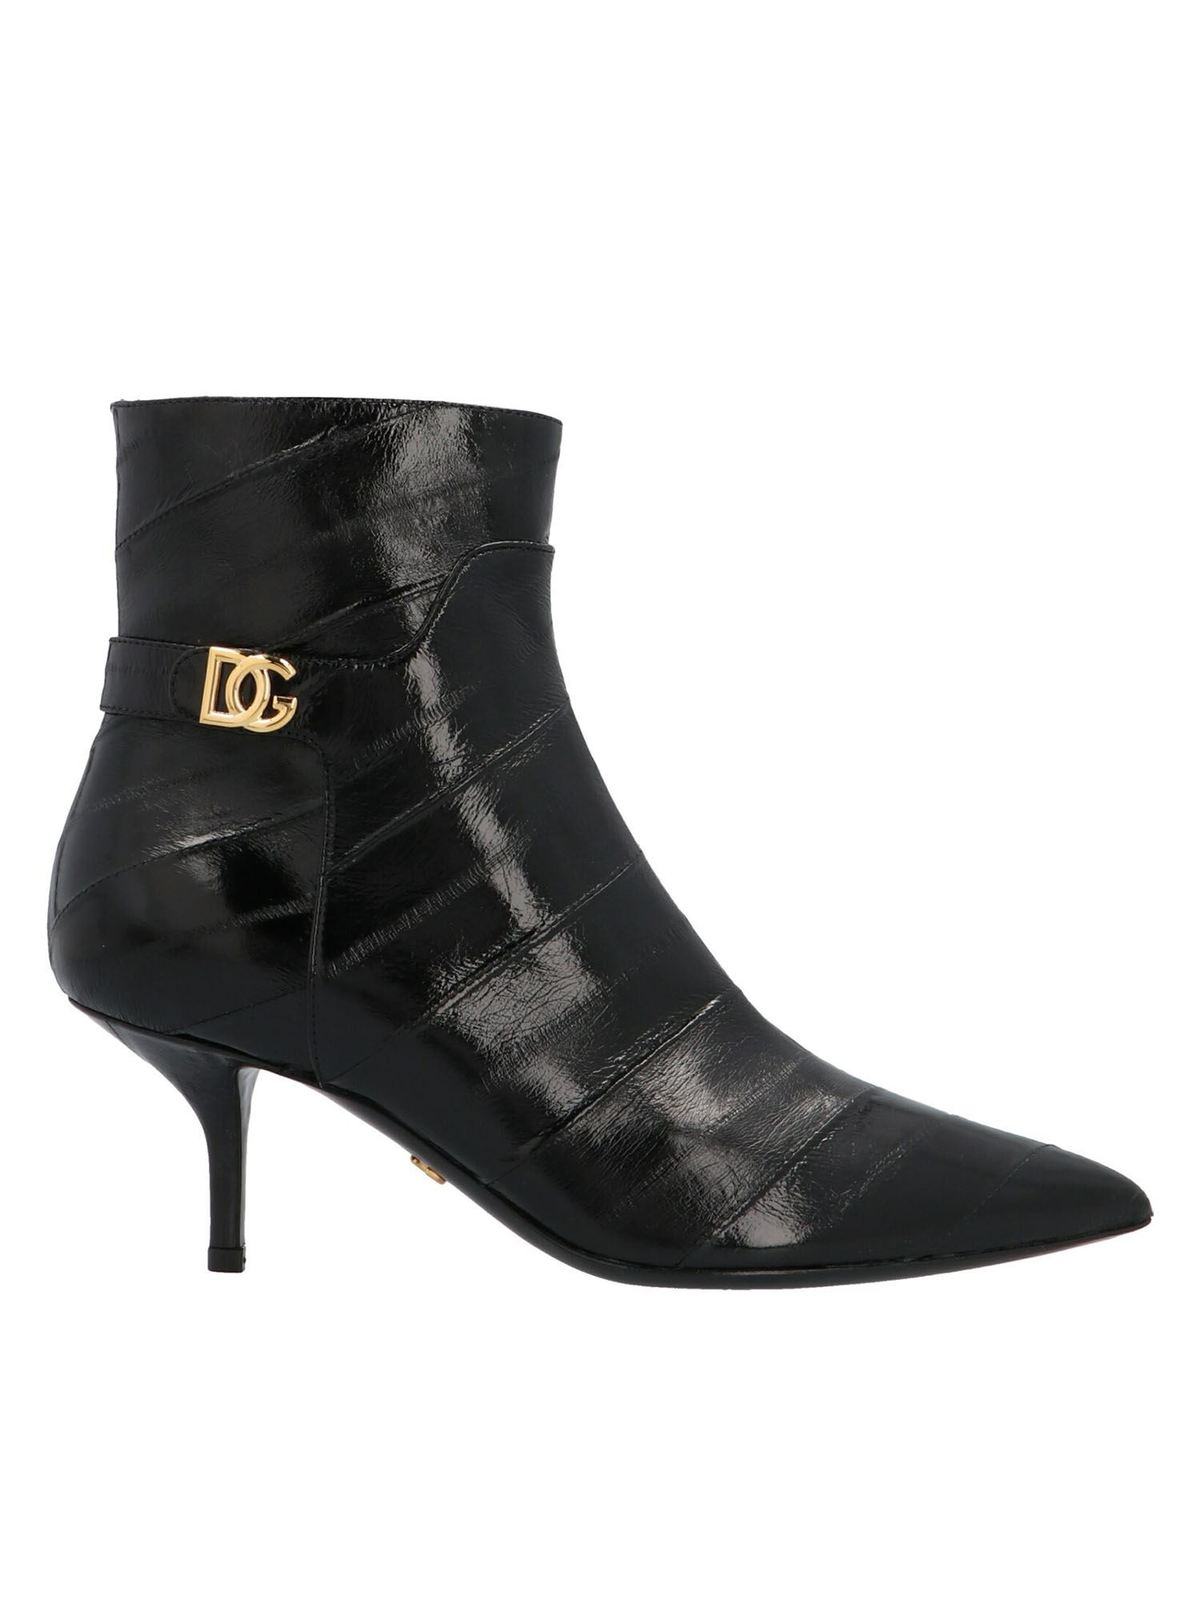 DOLCE & GABBANA CARDINALE LOGO ANKLE BOOTS IN BLACK